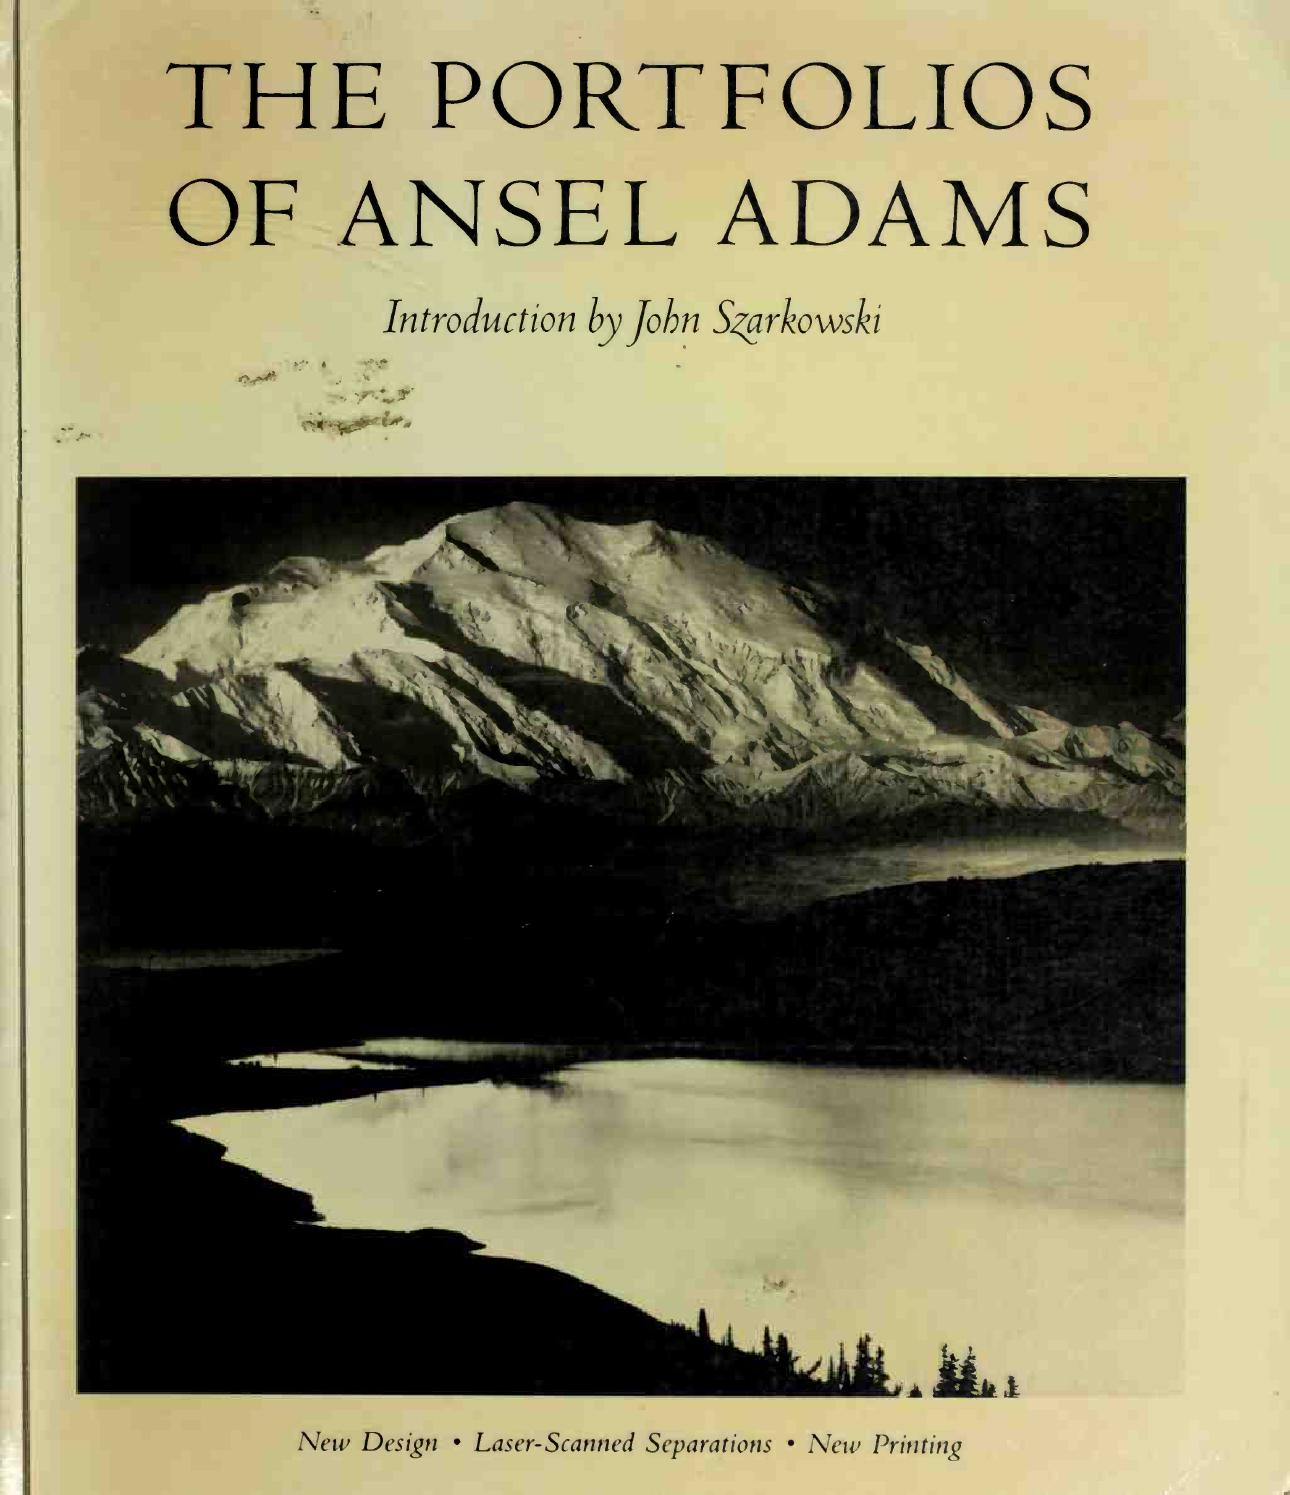 a special issue the national parks and three photographic portfolios by ansel adams